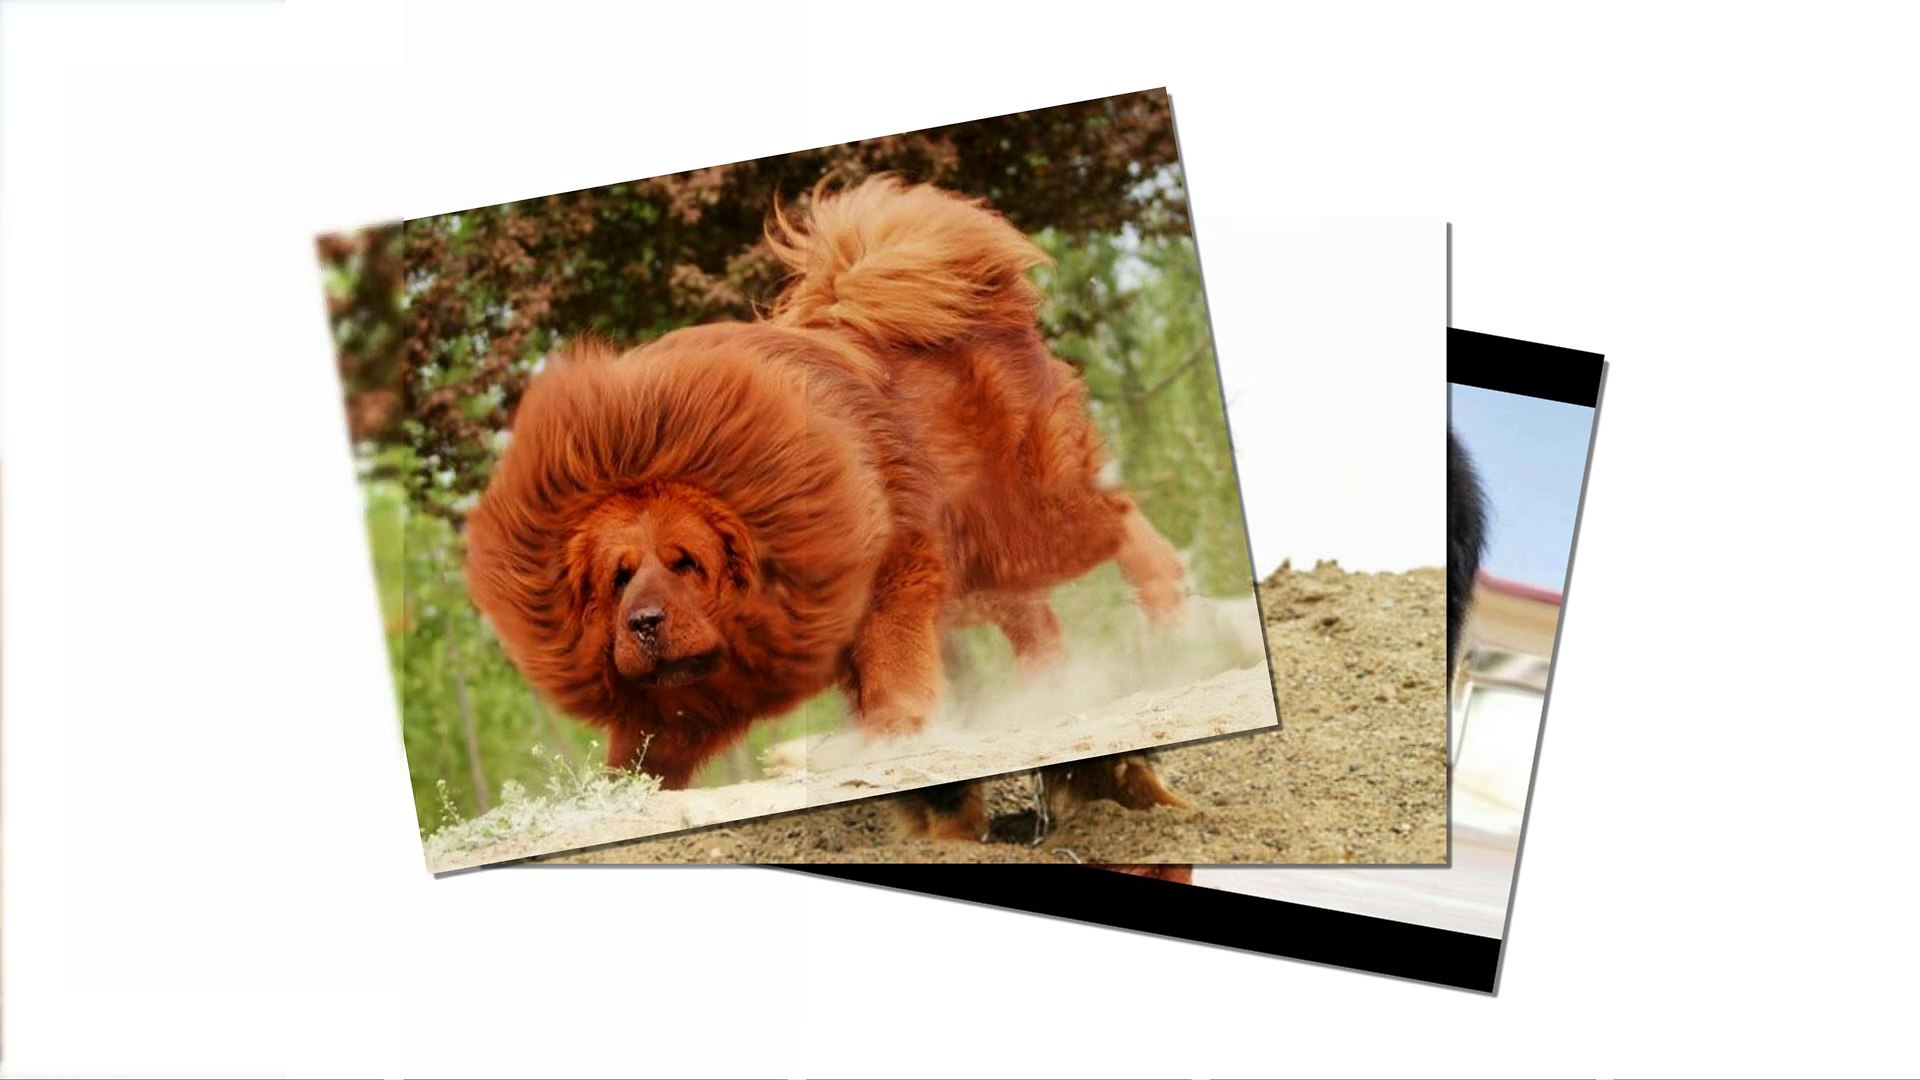 Tibetan Mastiff dogs - One of the huge dogs come from China. Do you afraid  them ?